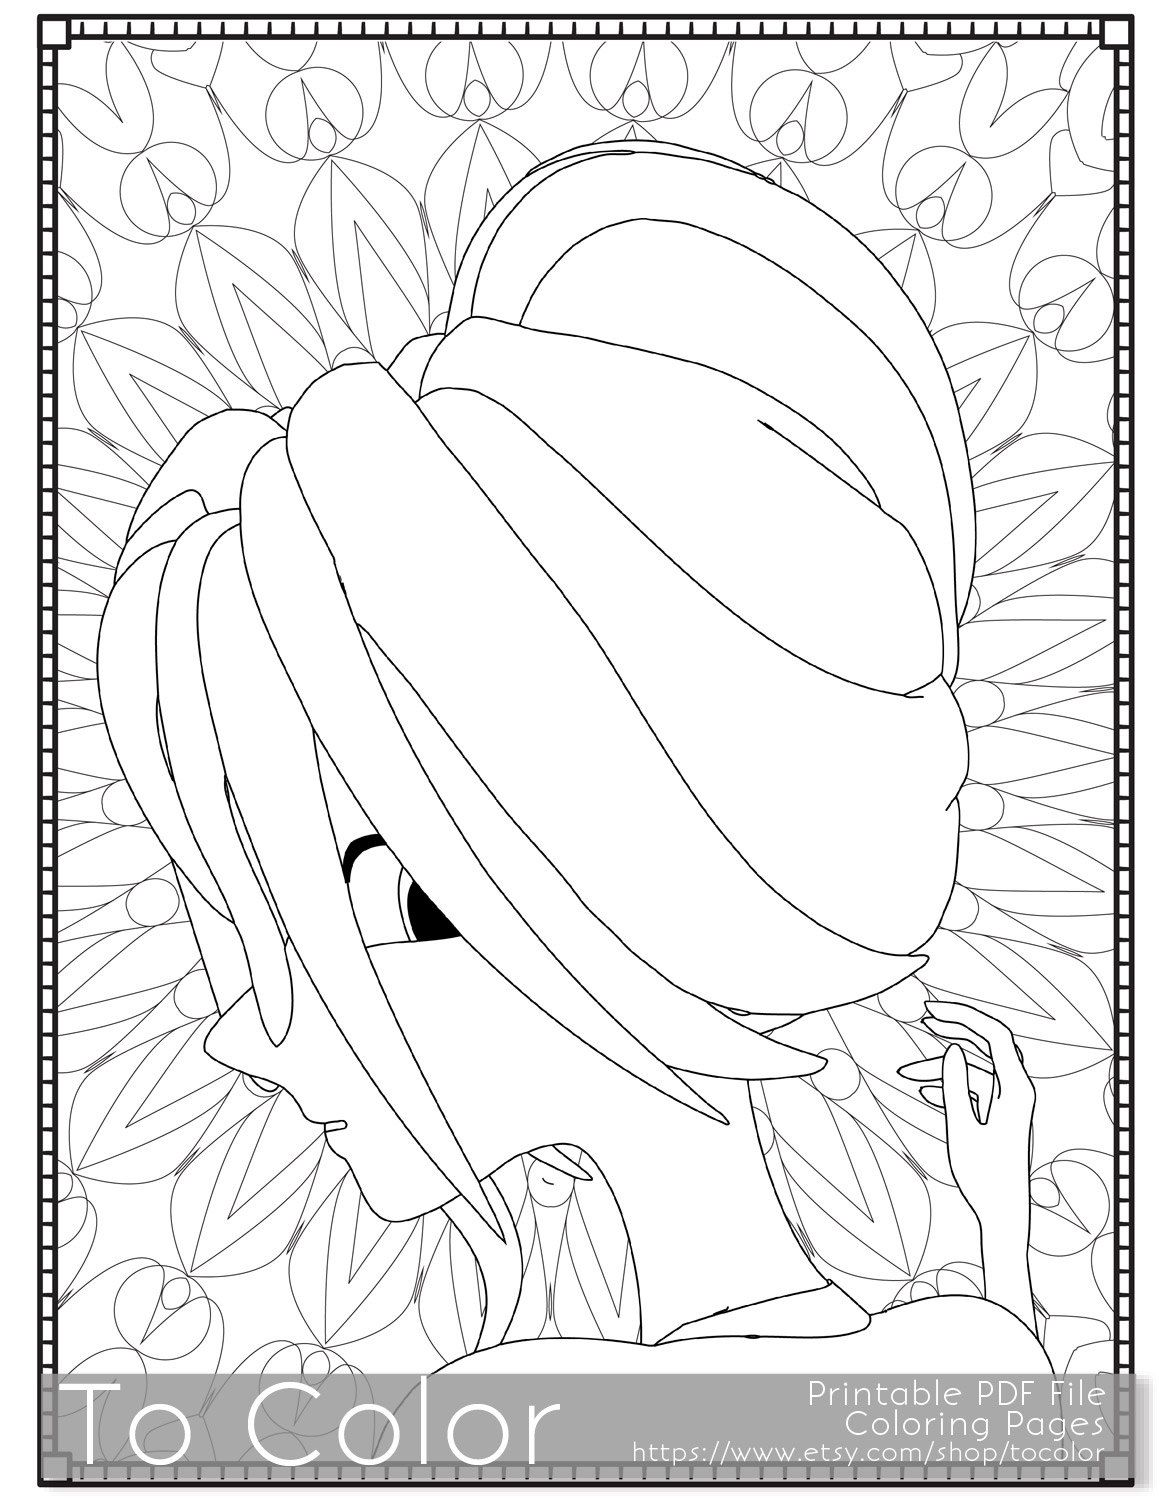 The botany coloring book pdf - Girl Printable Coloring Pages For Adults Pdf Jpg Instant Download Coloring Book Coloring Sheet Grown Ups Coloring Book Digital Stamp